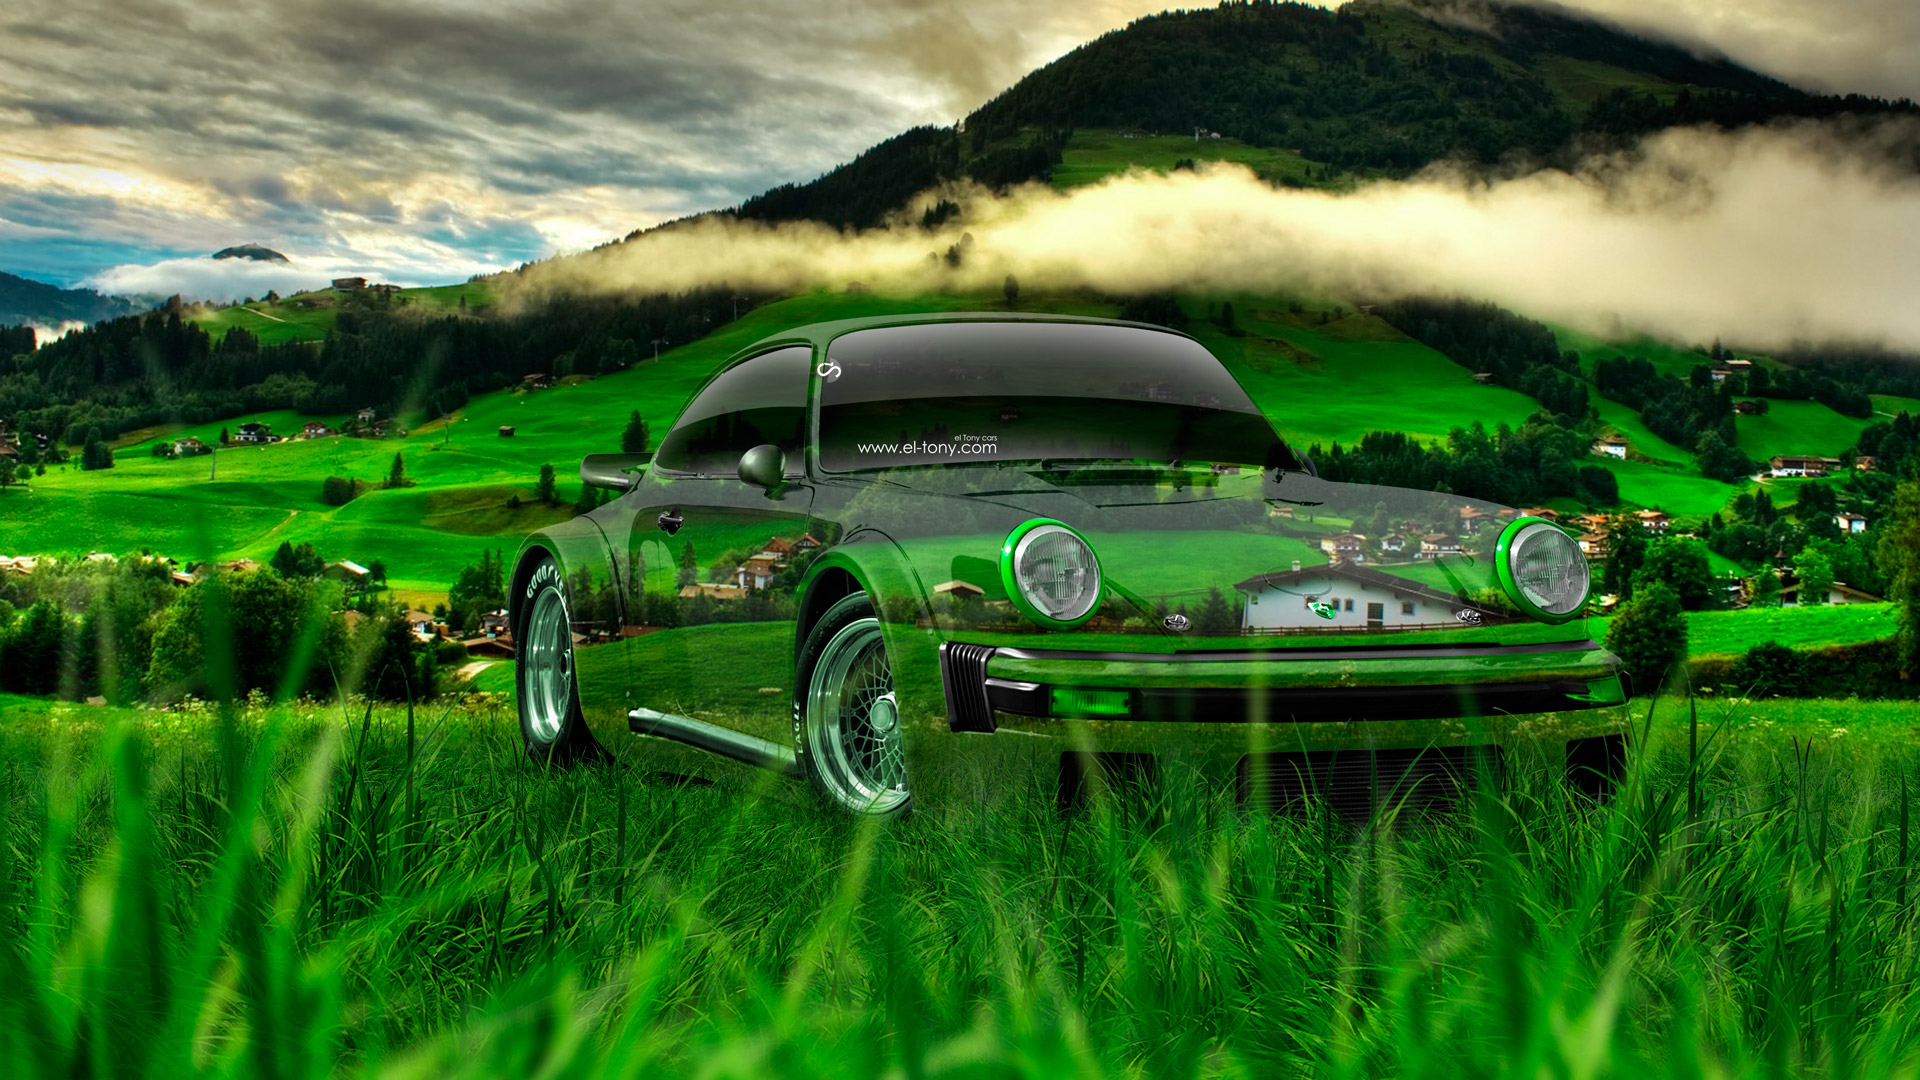 Gentil ... Porsche 911 Turbo 1976 Tuning Crystal Nature Car 2014